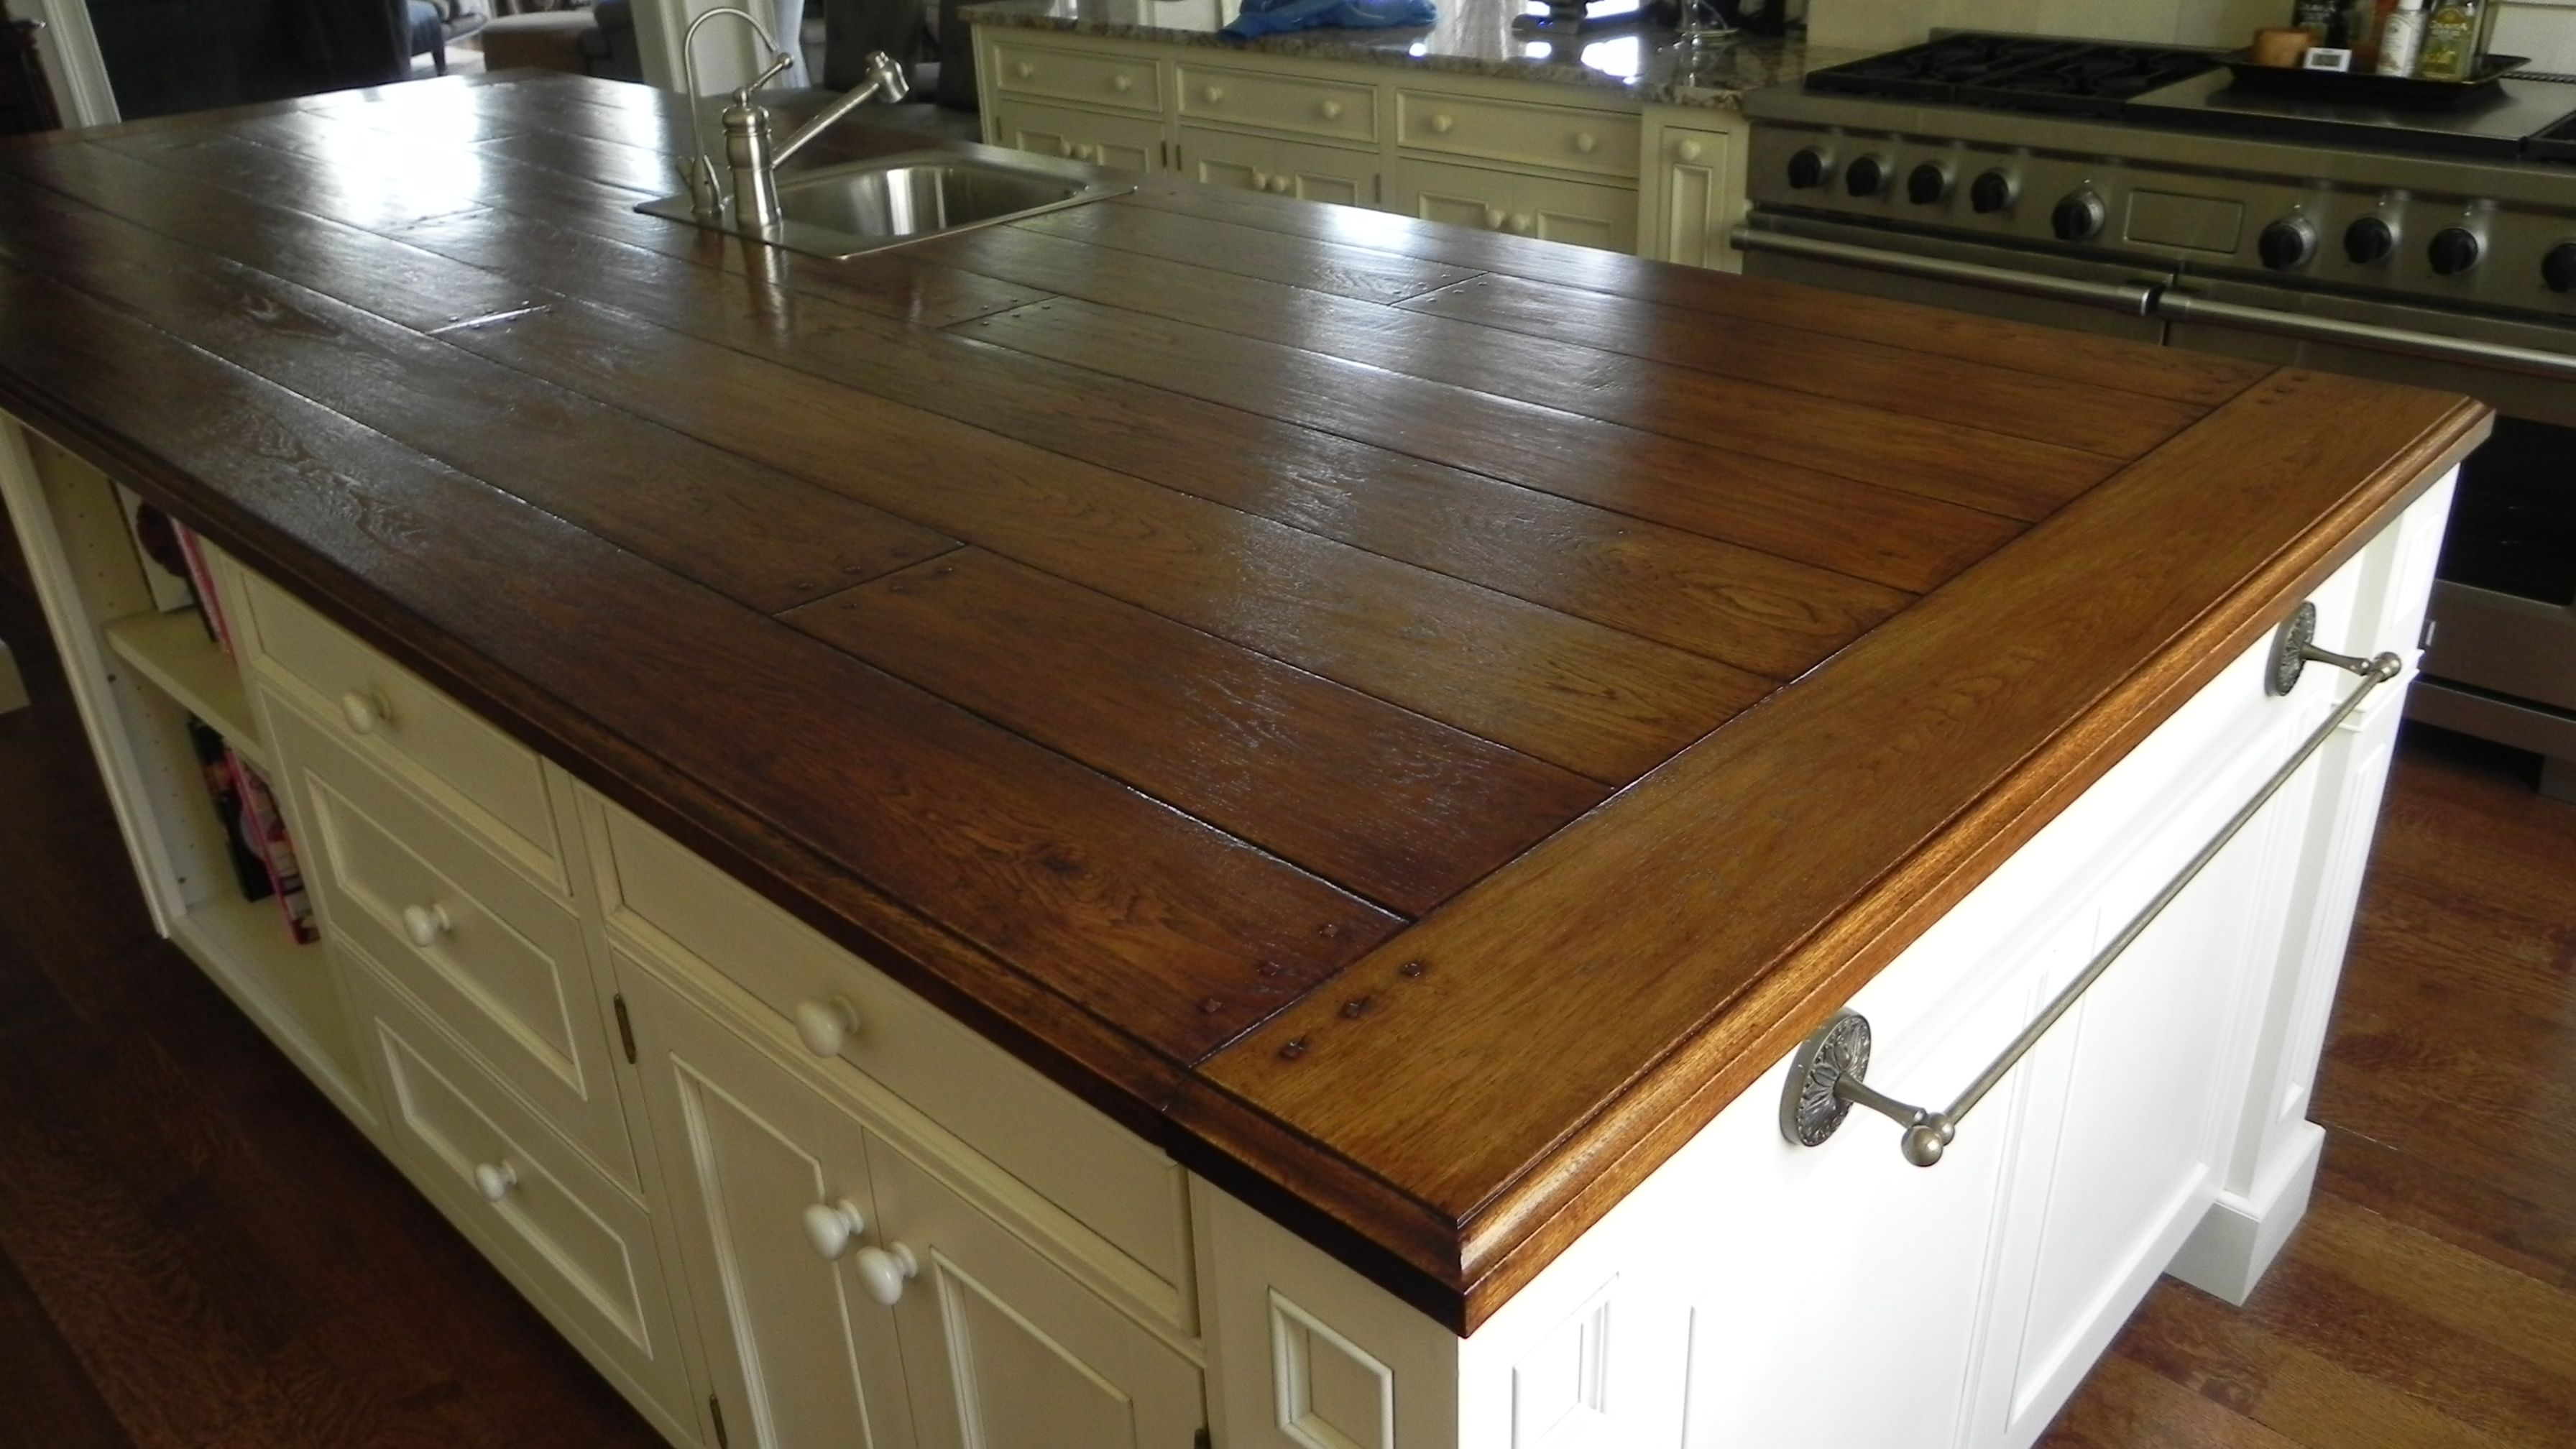 Countertops Legendary Hardwood Floors Llc Wood Countertops